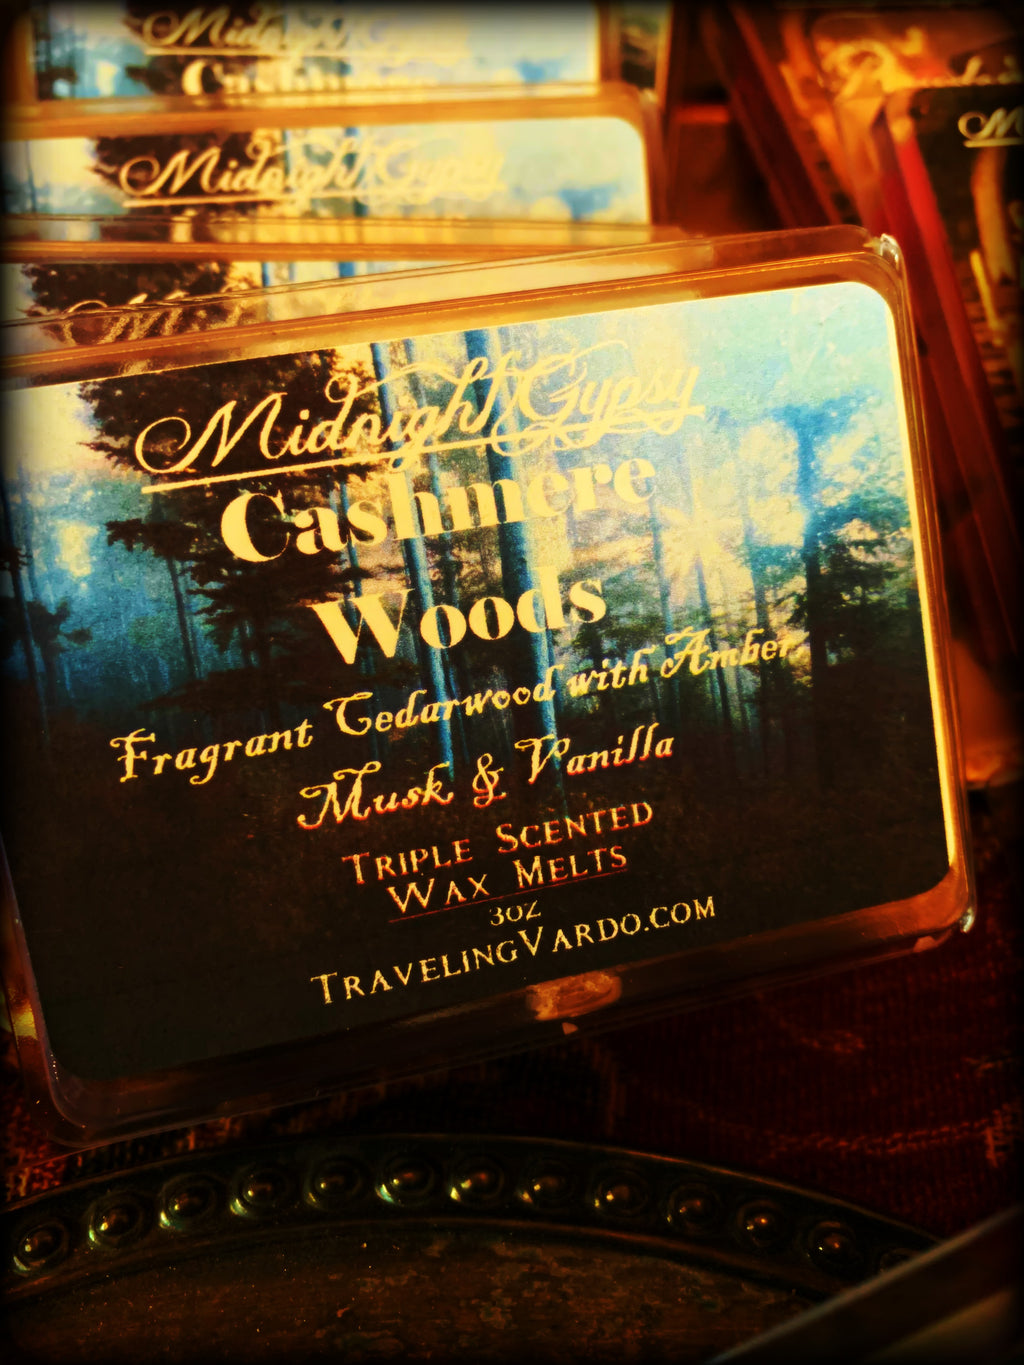 Cashmere Woods Wax Melts TravelingVardo.com